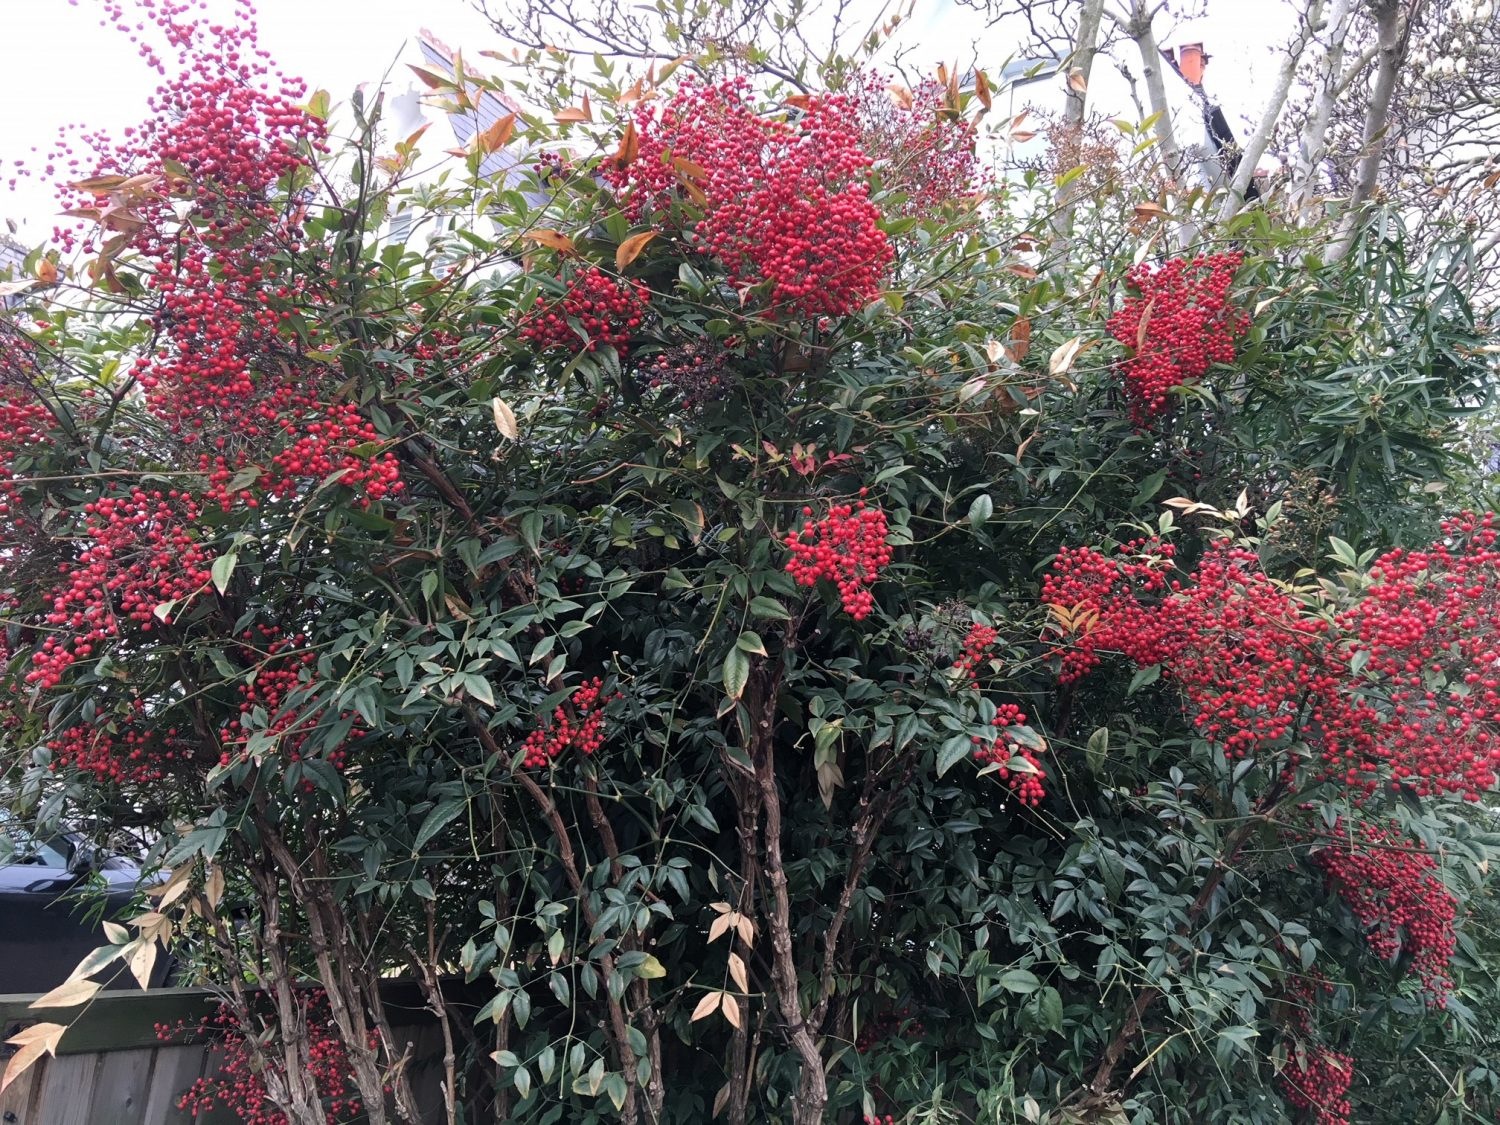 Large specimens of the sacred bamboo, Nandina domestica, with its showy clumps of red berries, in the same Putney garden